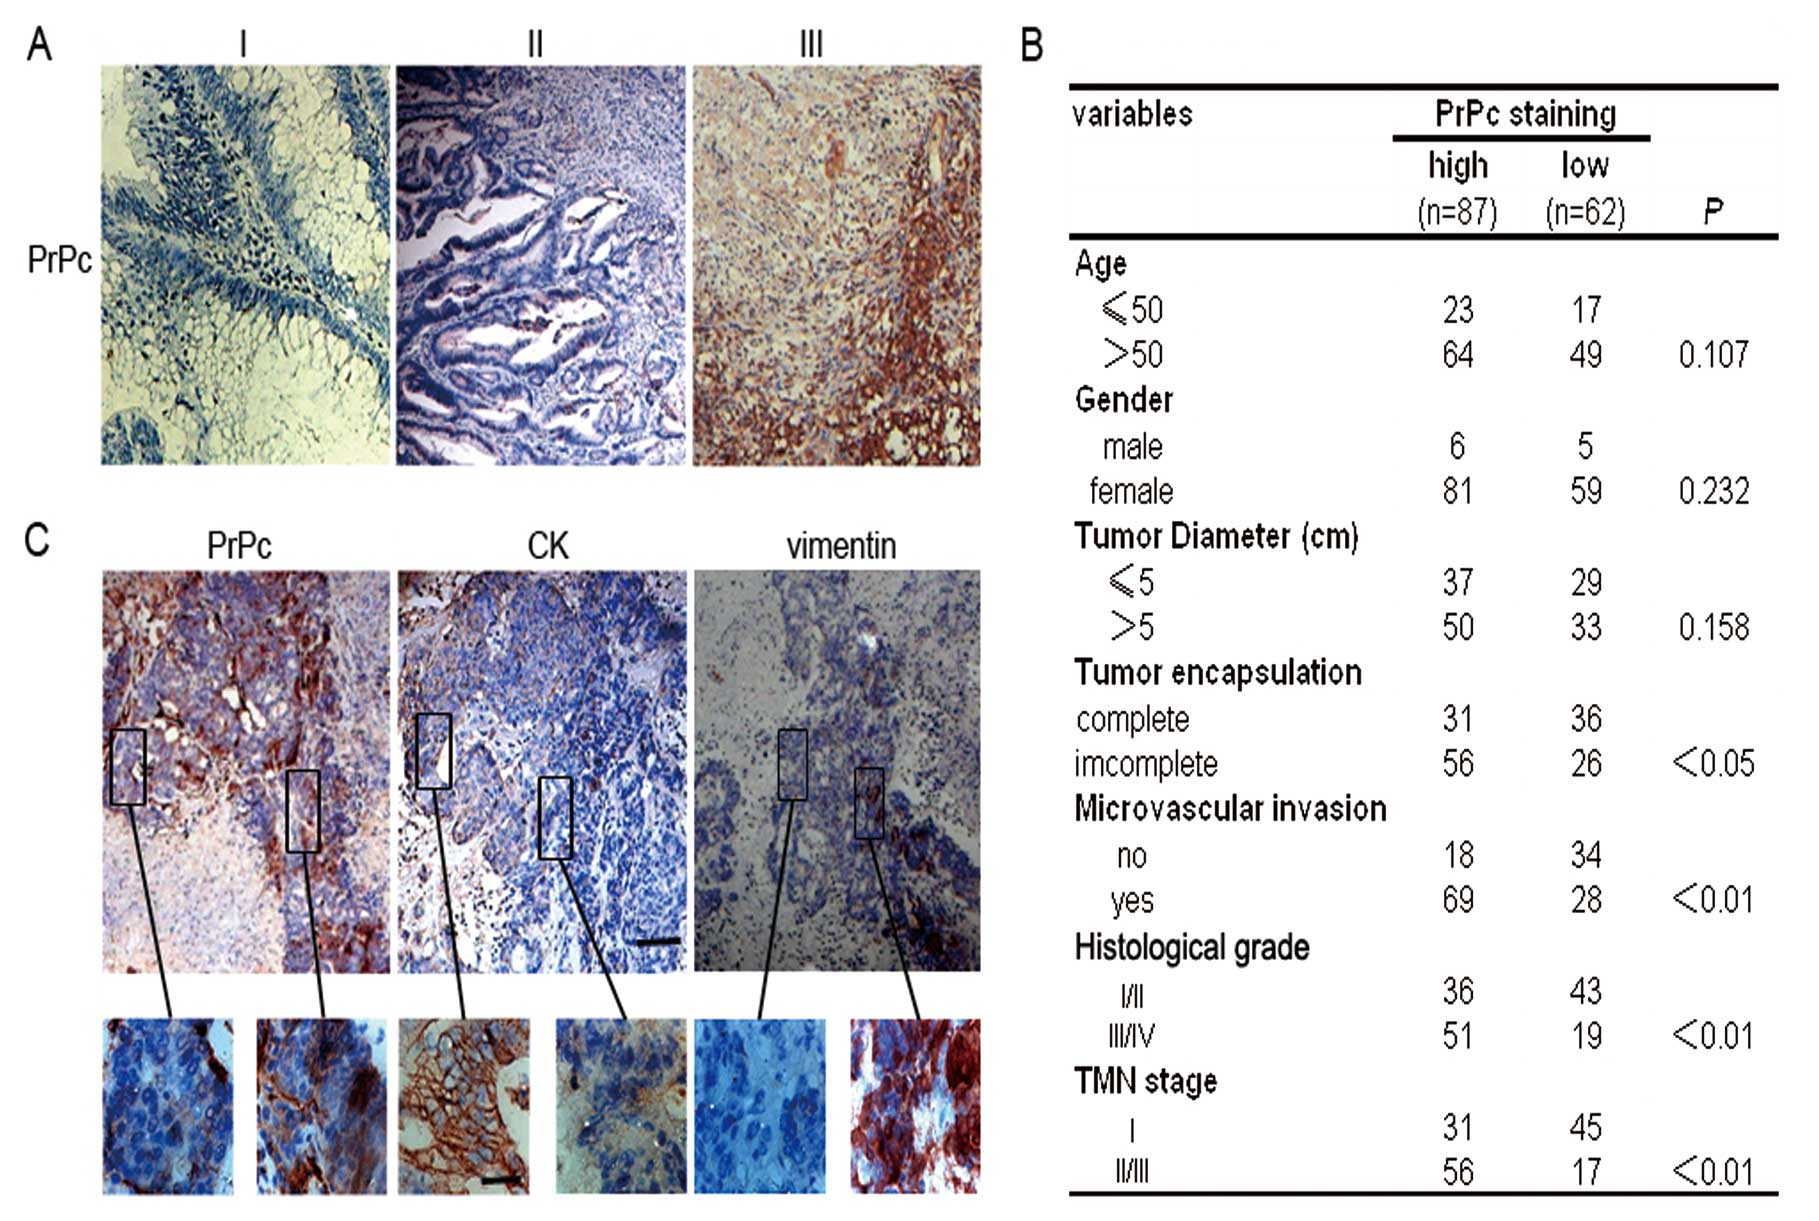 Cellular Prion Protein Accelerates Colorectal Cancer Metastasis Via The Fyn Sp1 Satb1 Axis